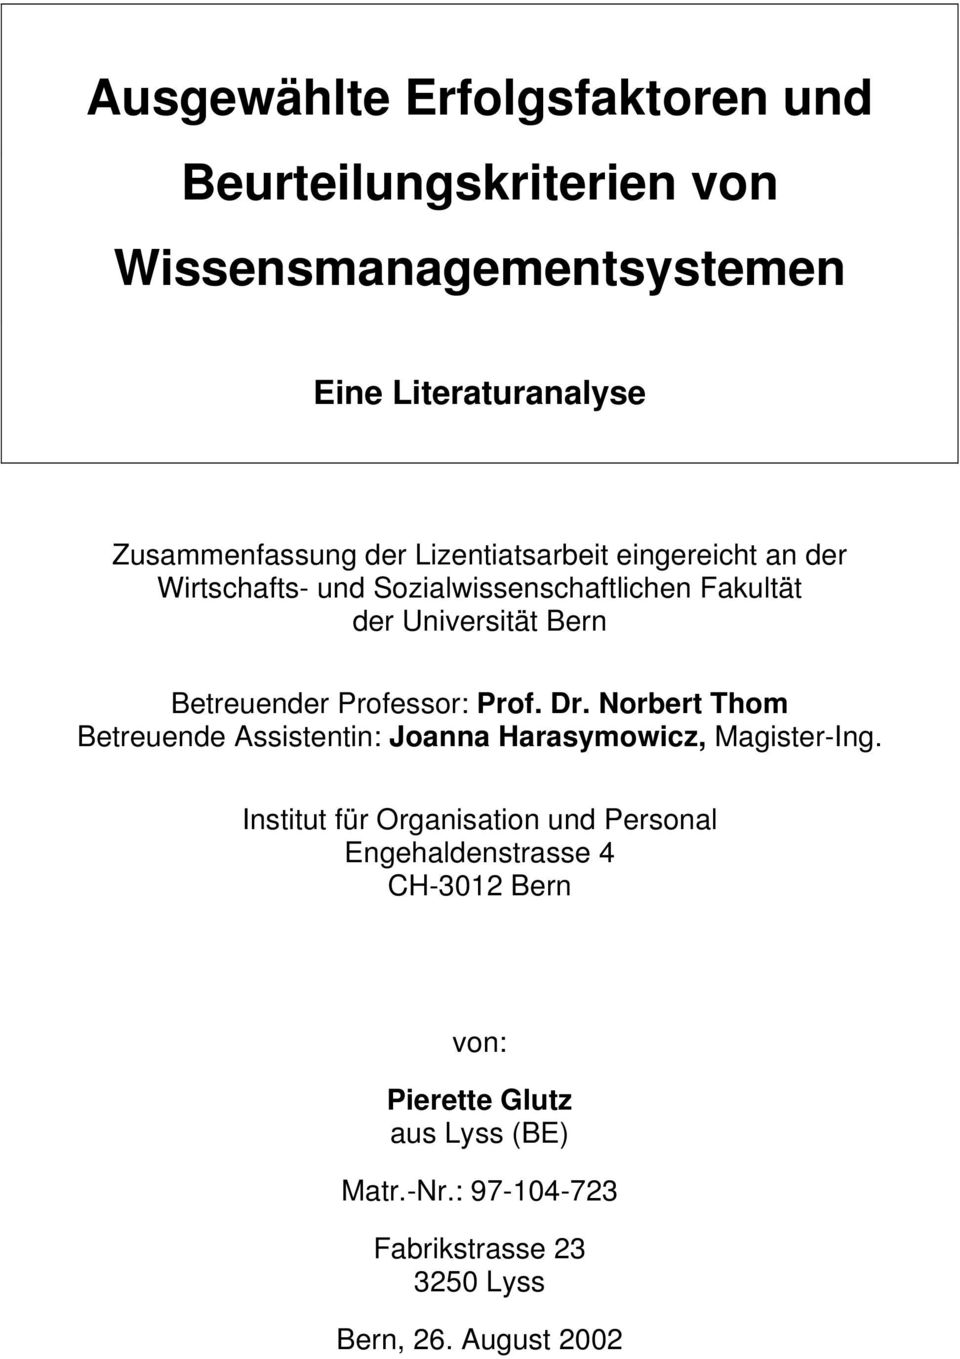 Professor: Prof. Dr. Norbert Thom Betreuende Assistentin: Joanna Harasymowicz, Magister-Ing.